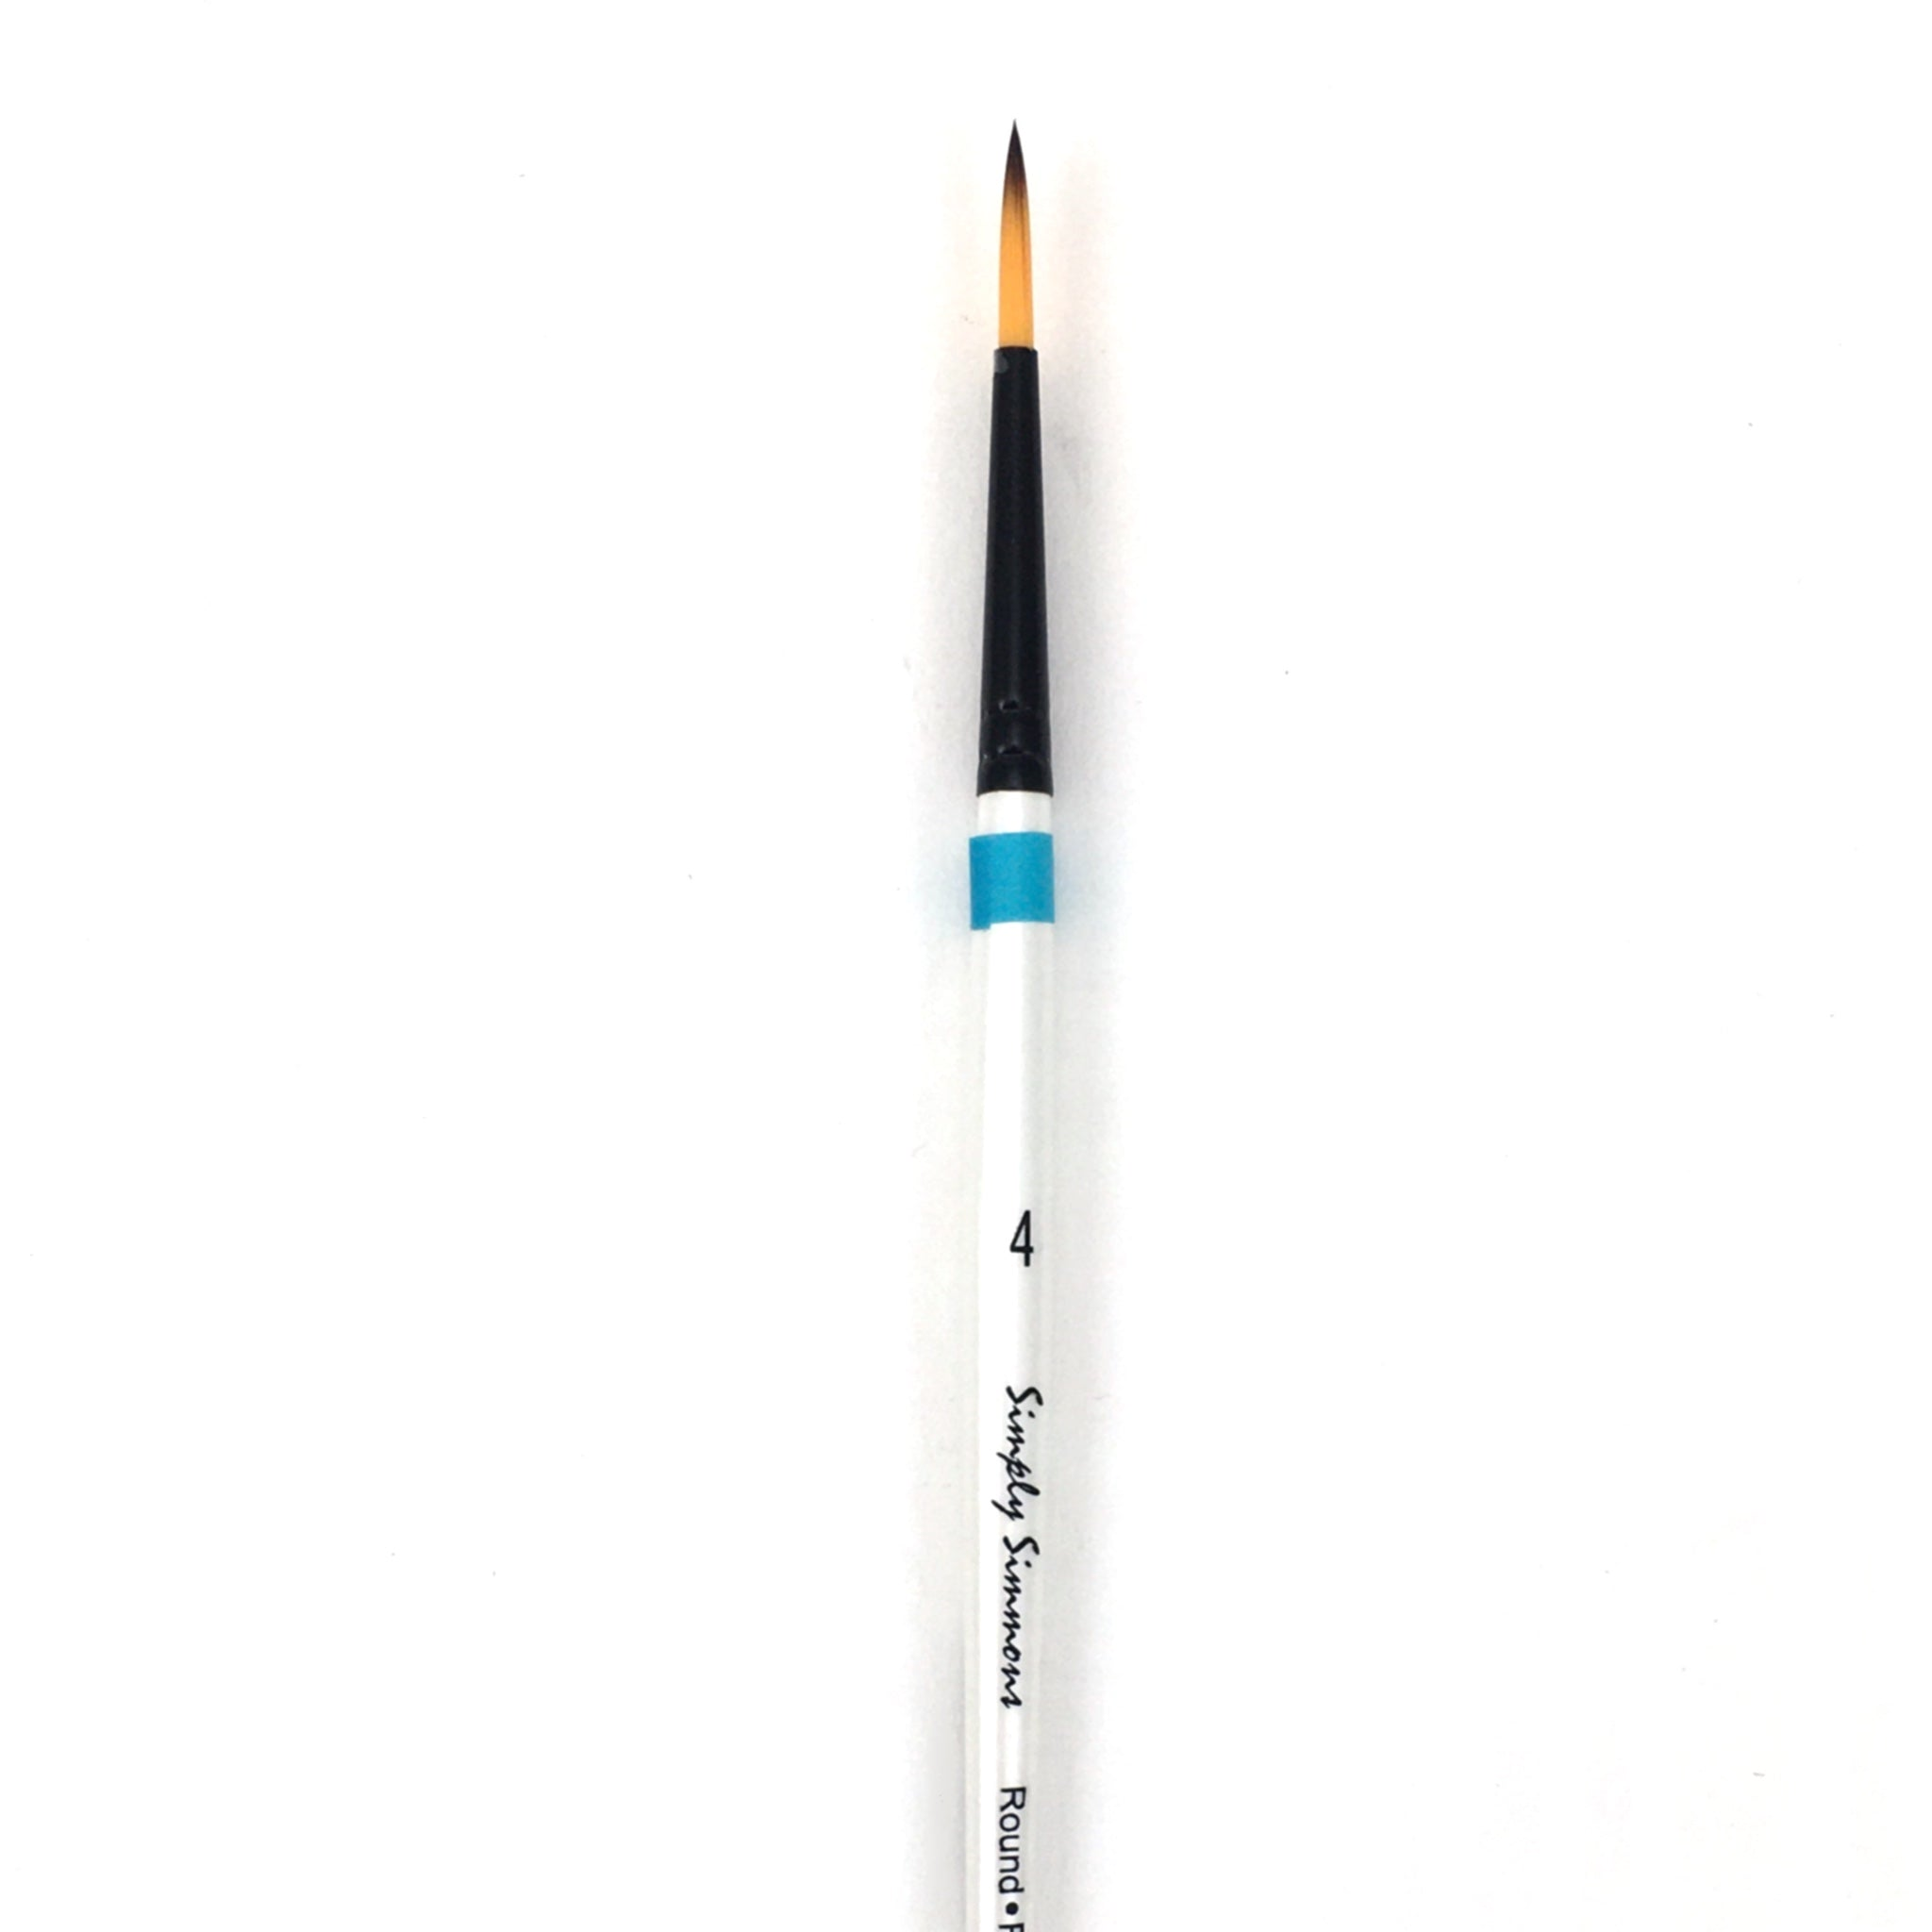 Robert Simmons Simply Simmons Watercolor Brush (Short Handle) - Round / - #4 / - synthetic by Robert Simmons - K. A. Artist Shop